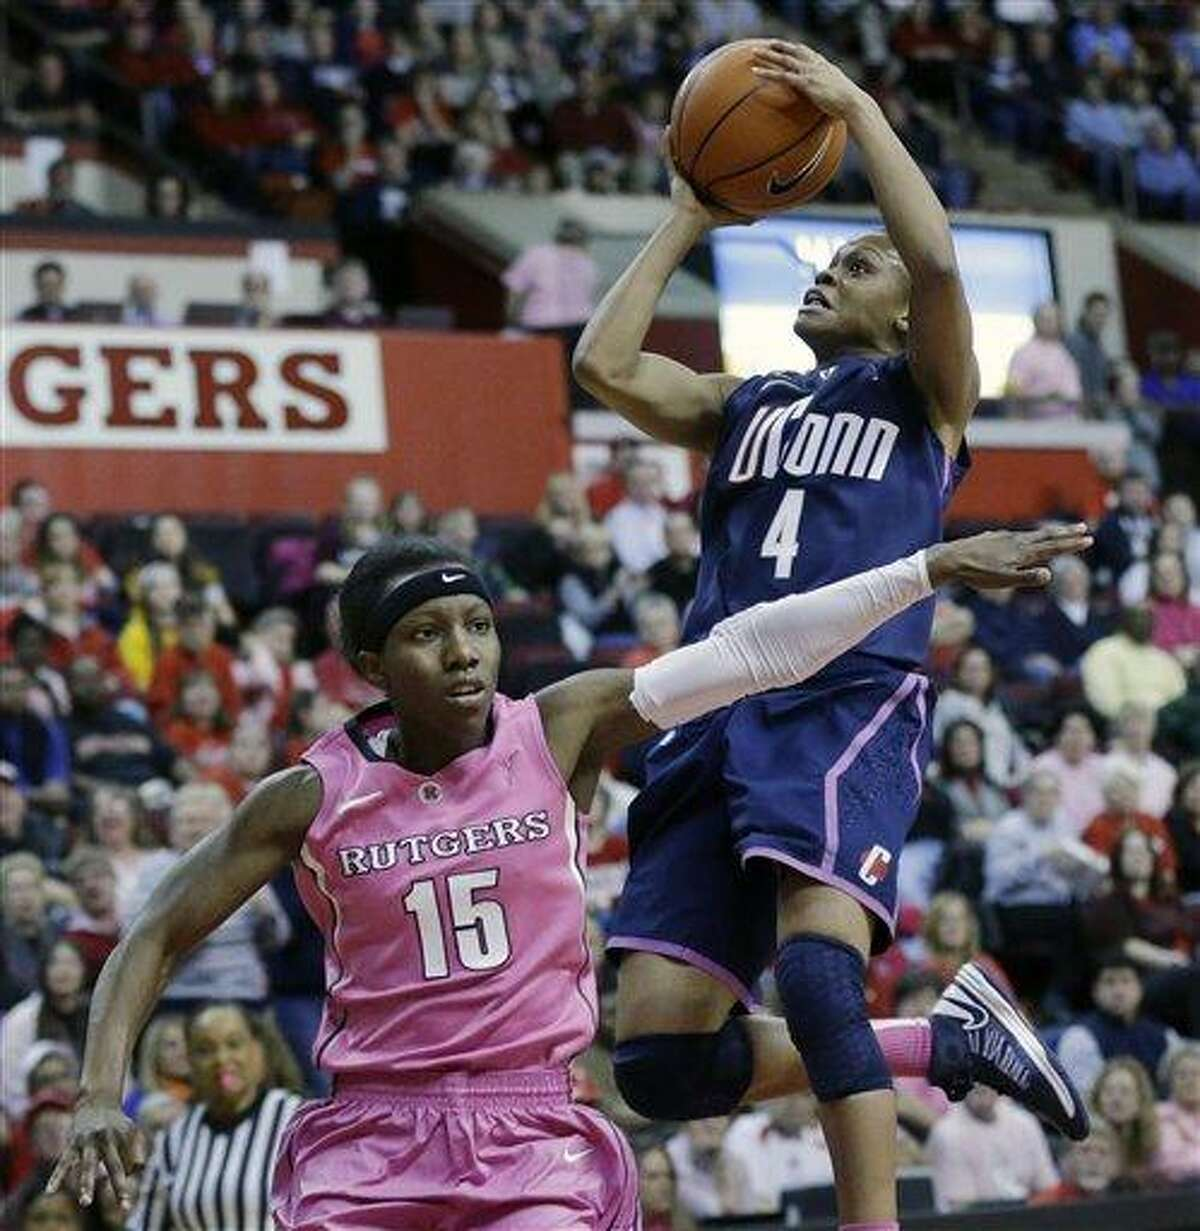 Connecticut's Moriah Jefferson (4) takes a shot over Rutgers' Syessence Davis (15) during the first half of an NCAA college basketball game Saturday, Feb. 16, 2013, in Piscataway, N.J. (AP Photo/Mel Evans)